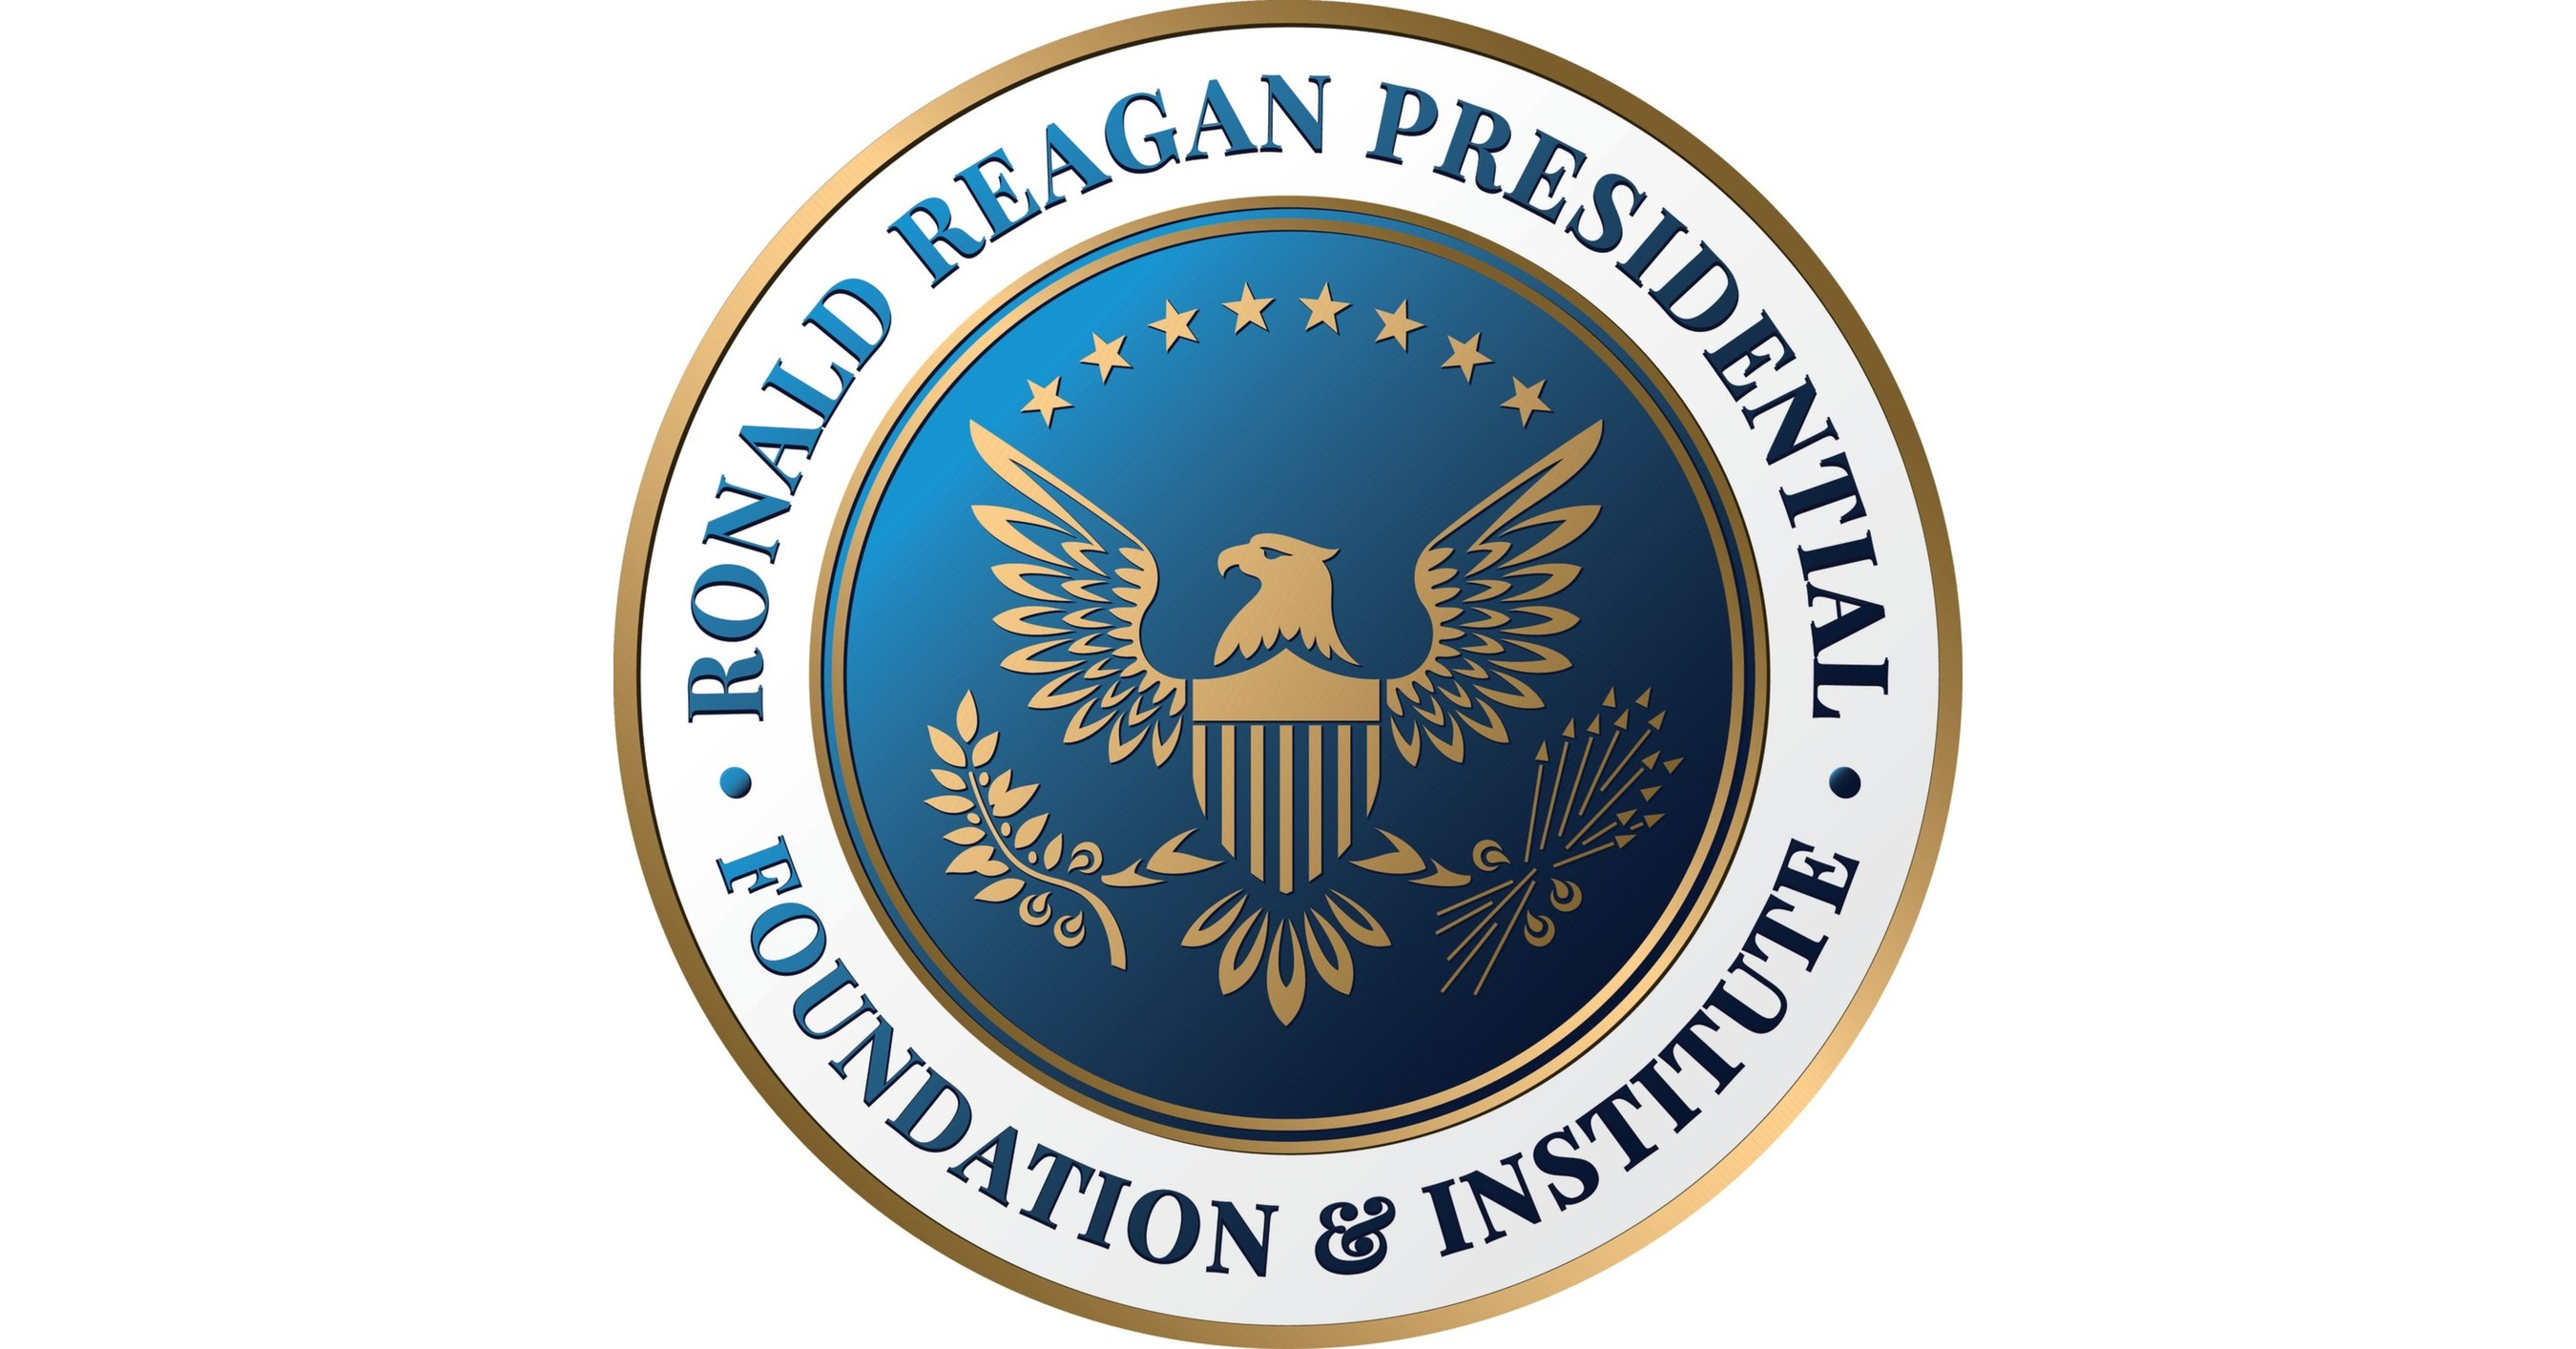 Statement By Fred Ryan, Chairman Of The Board Of The Ronald Reagan Presidential Foundation And Institute On The Death Of U.S. Senator John McCain